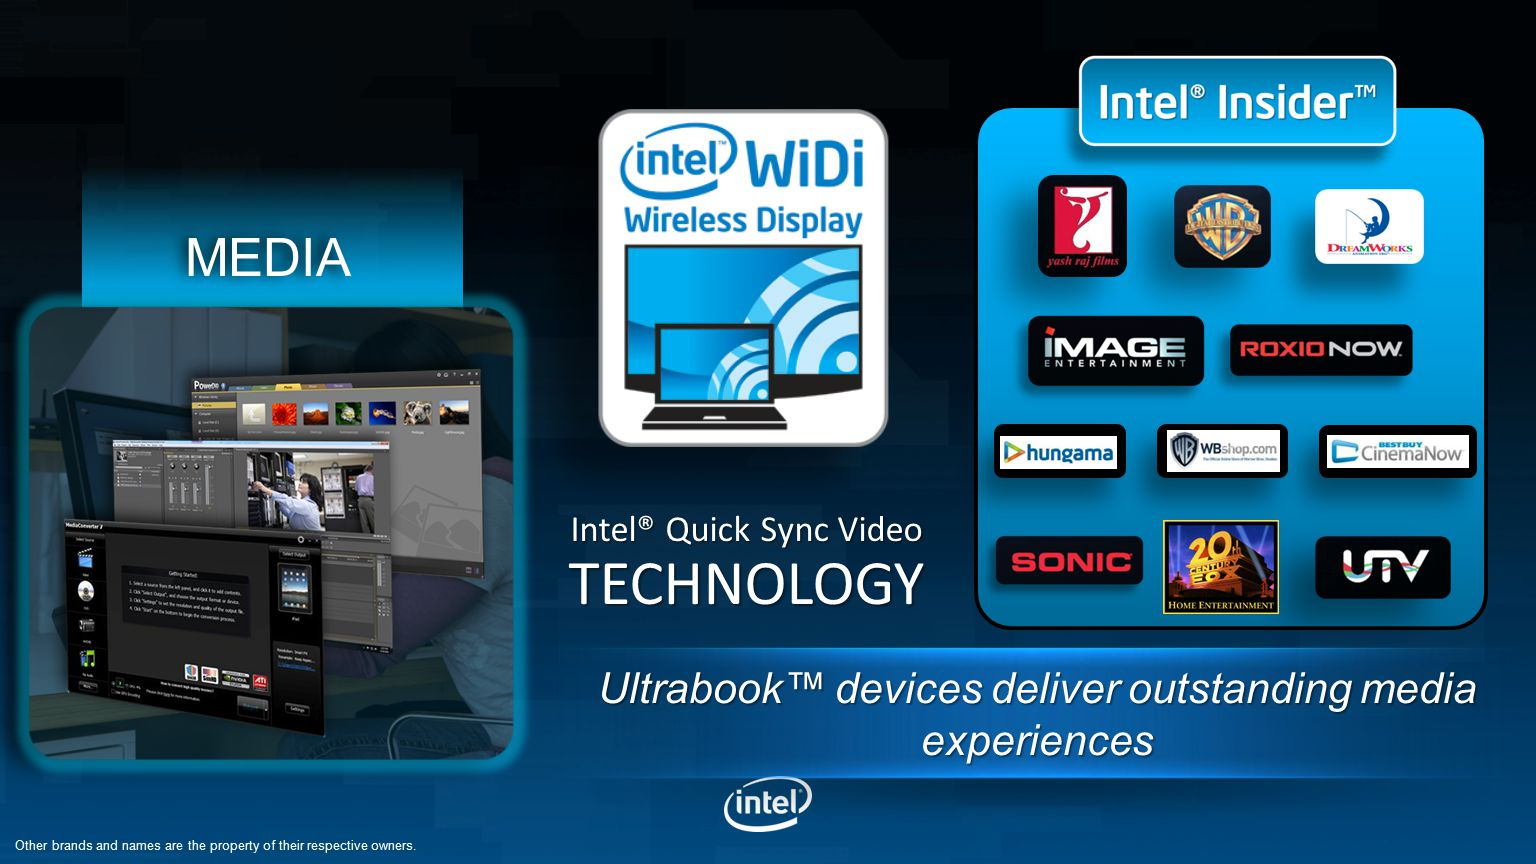 Intel® Quick Sync Video TECHNOLOGY MEDIA Other brands and names are the property of their respective owners.